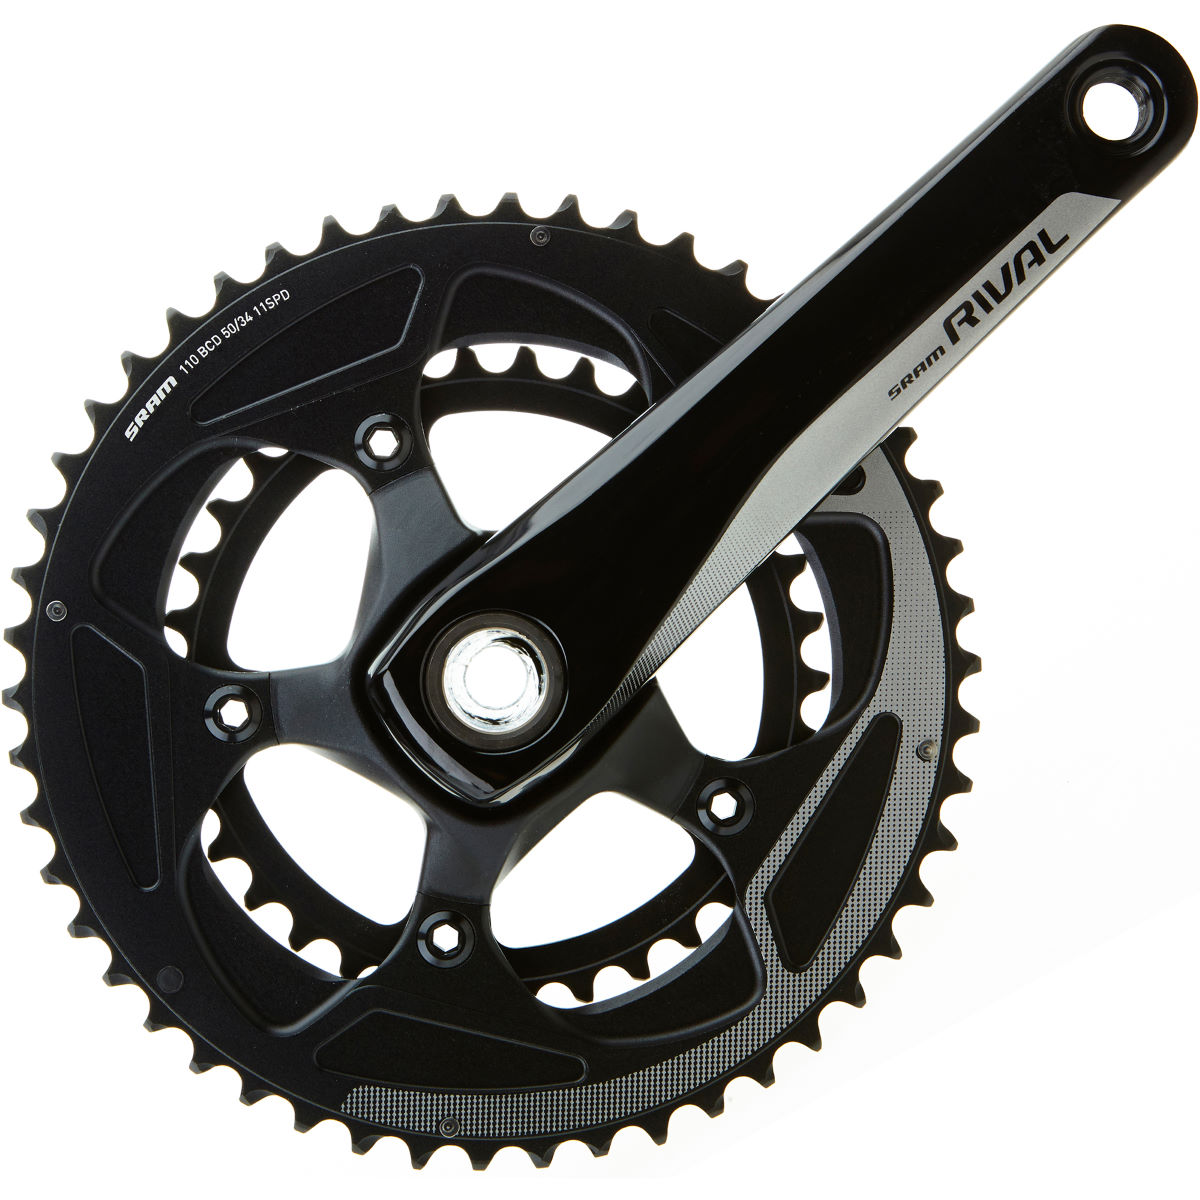 Sram Rival 22 Gxp Compact Chainset (11 Speed) - 50.34t 170mm 170mm